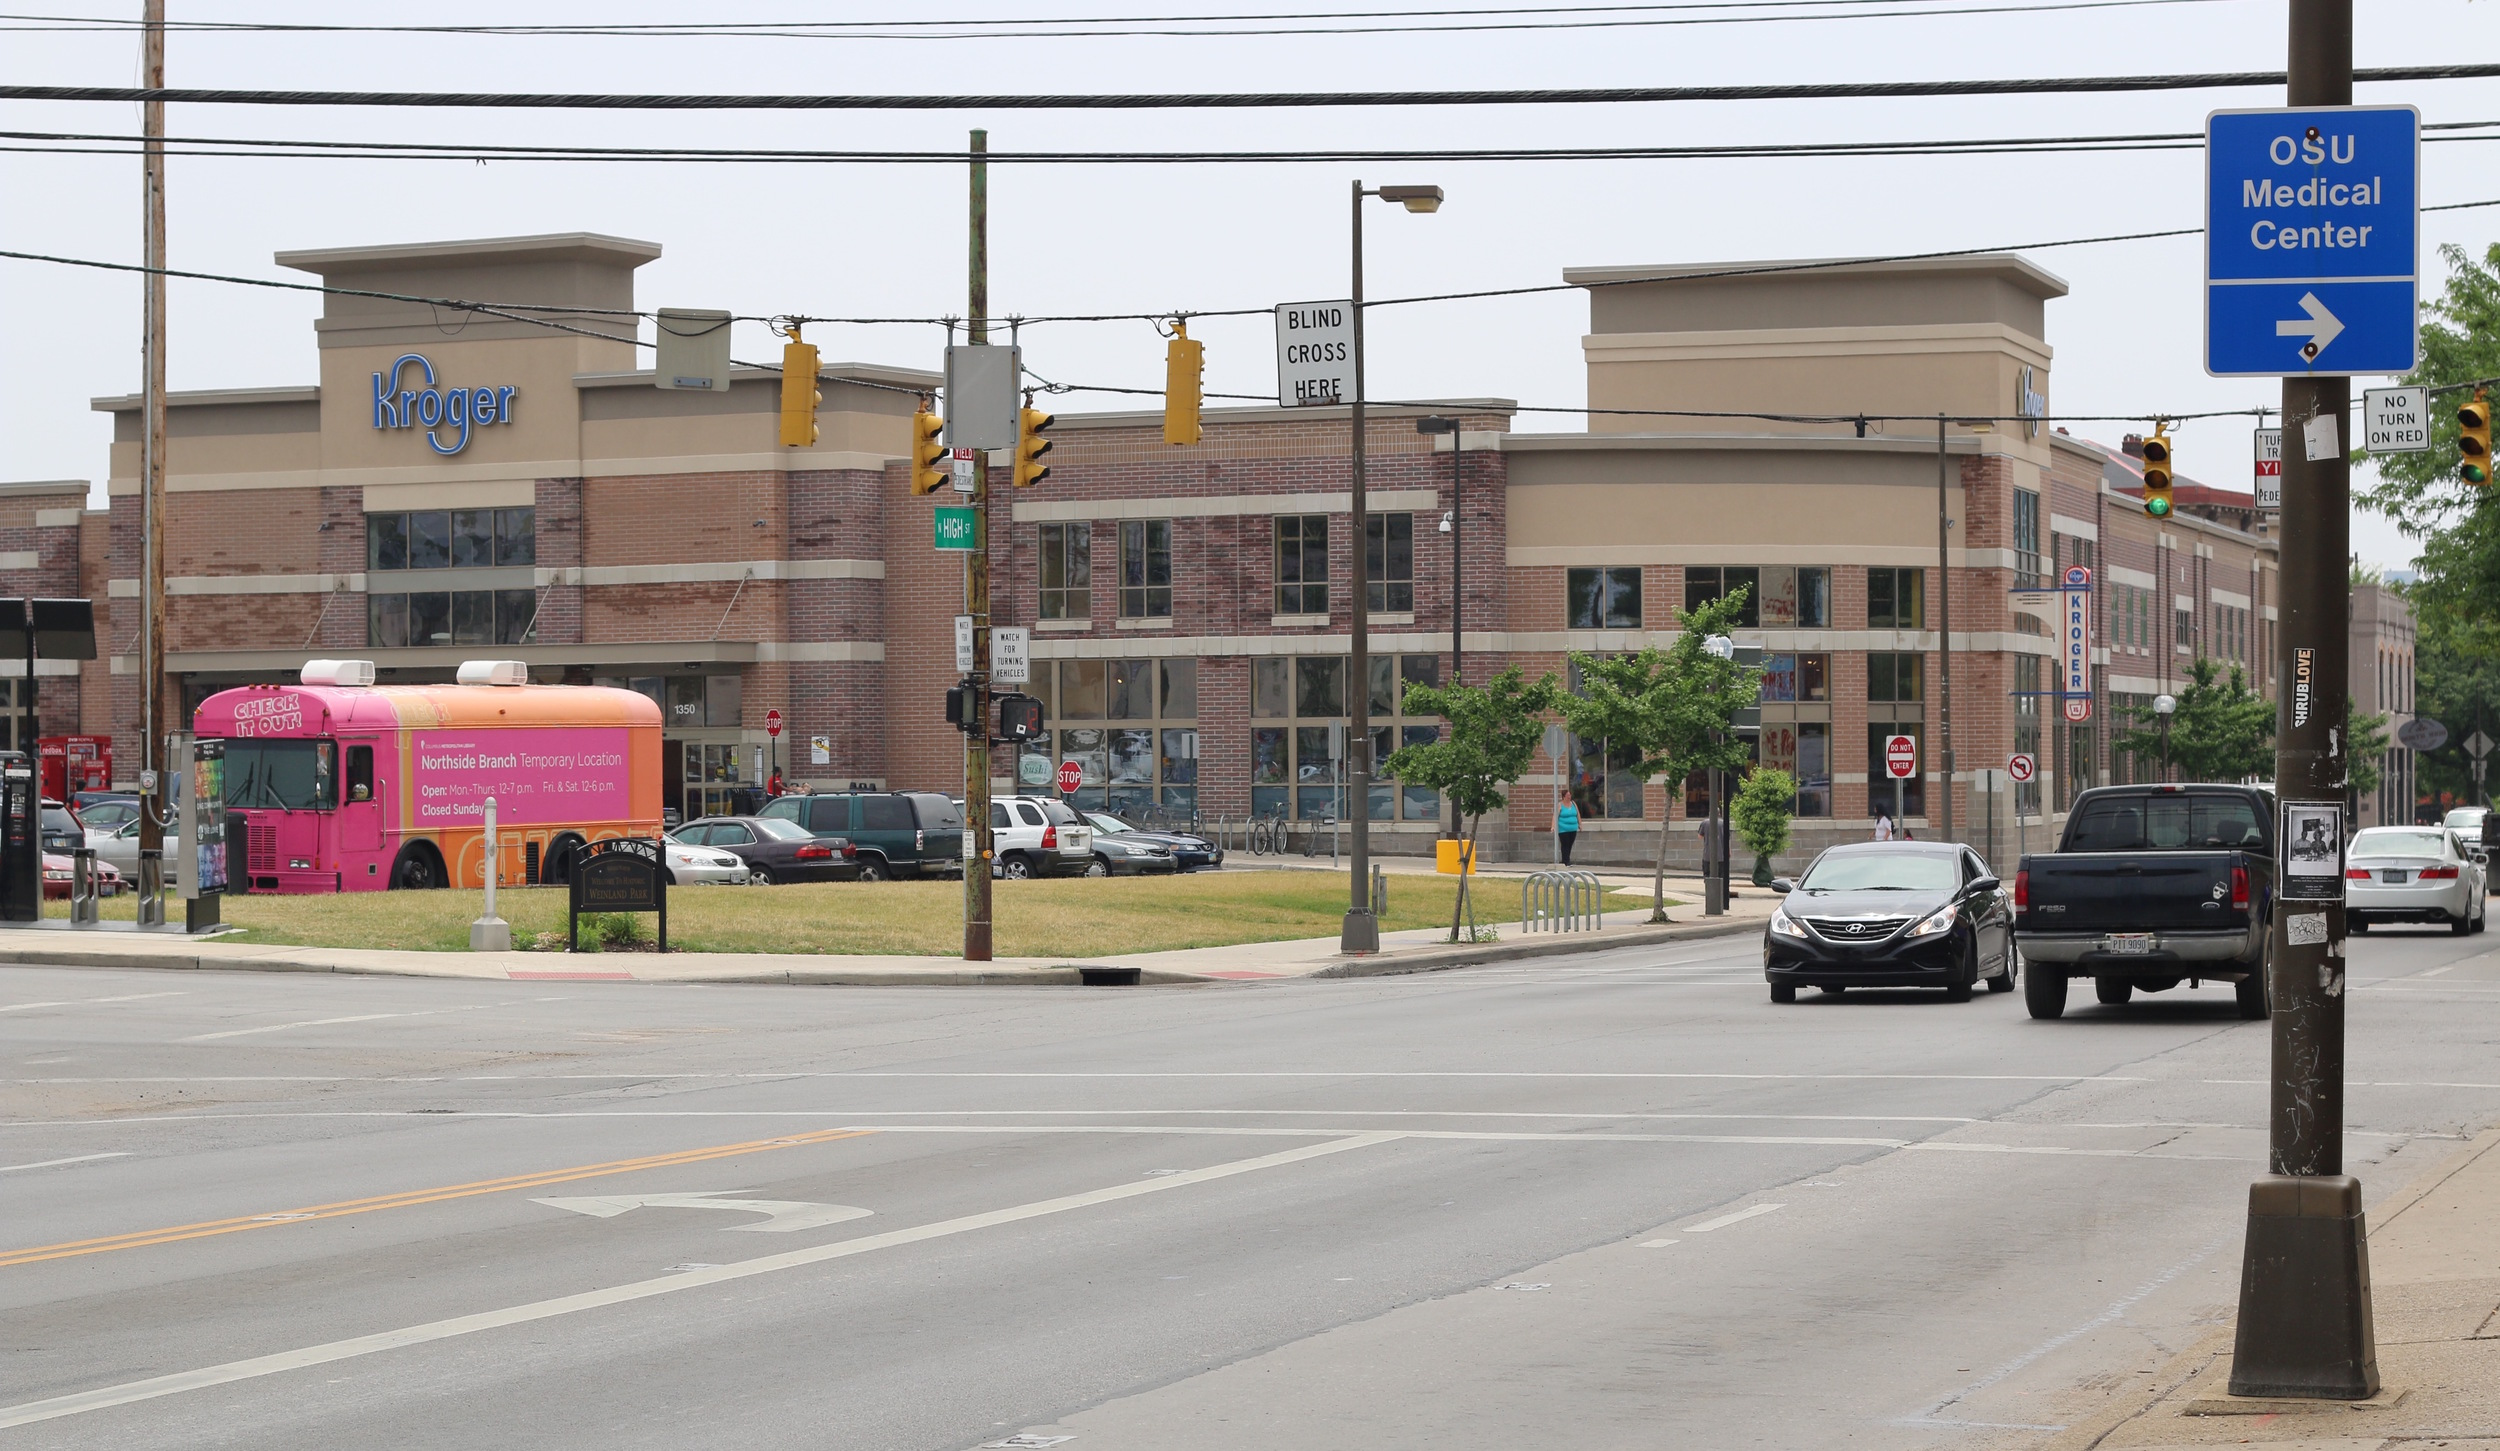 Nearby Kroger at King Avenue and North High Street